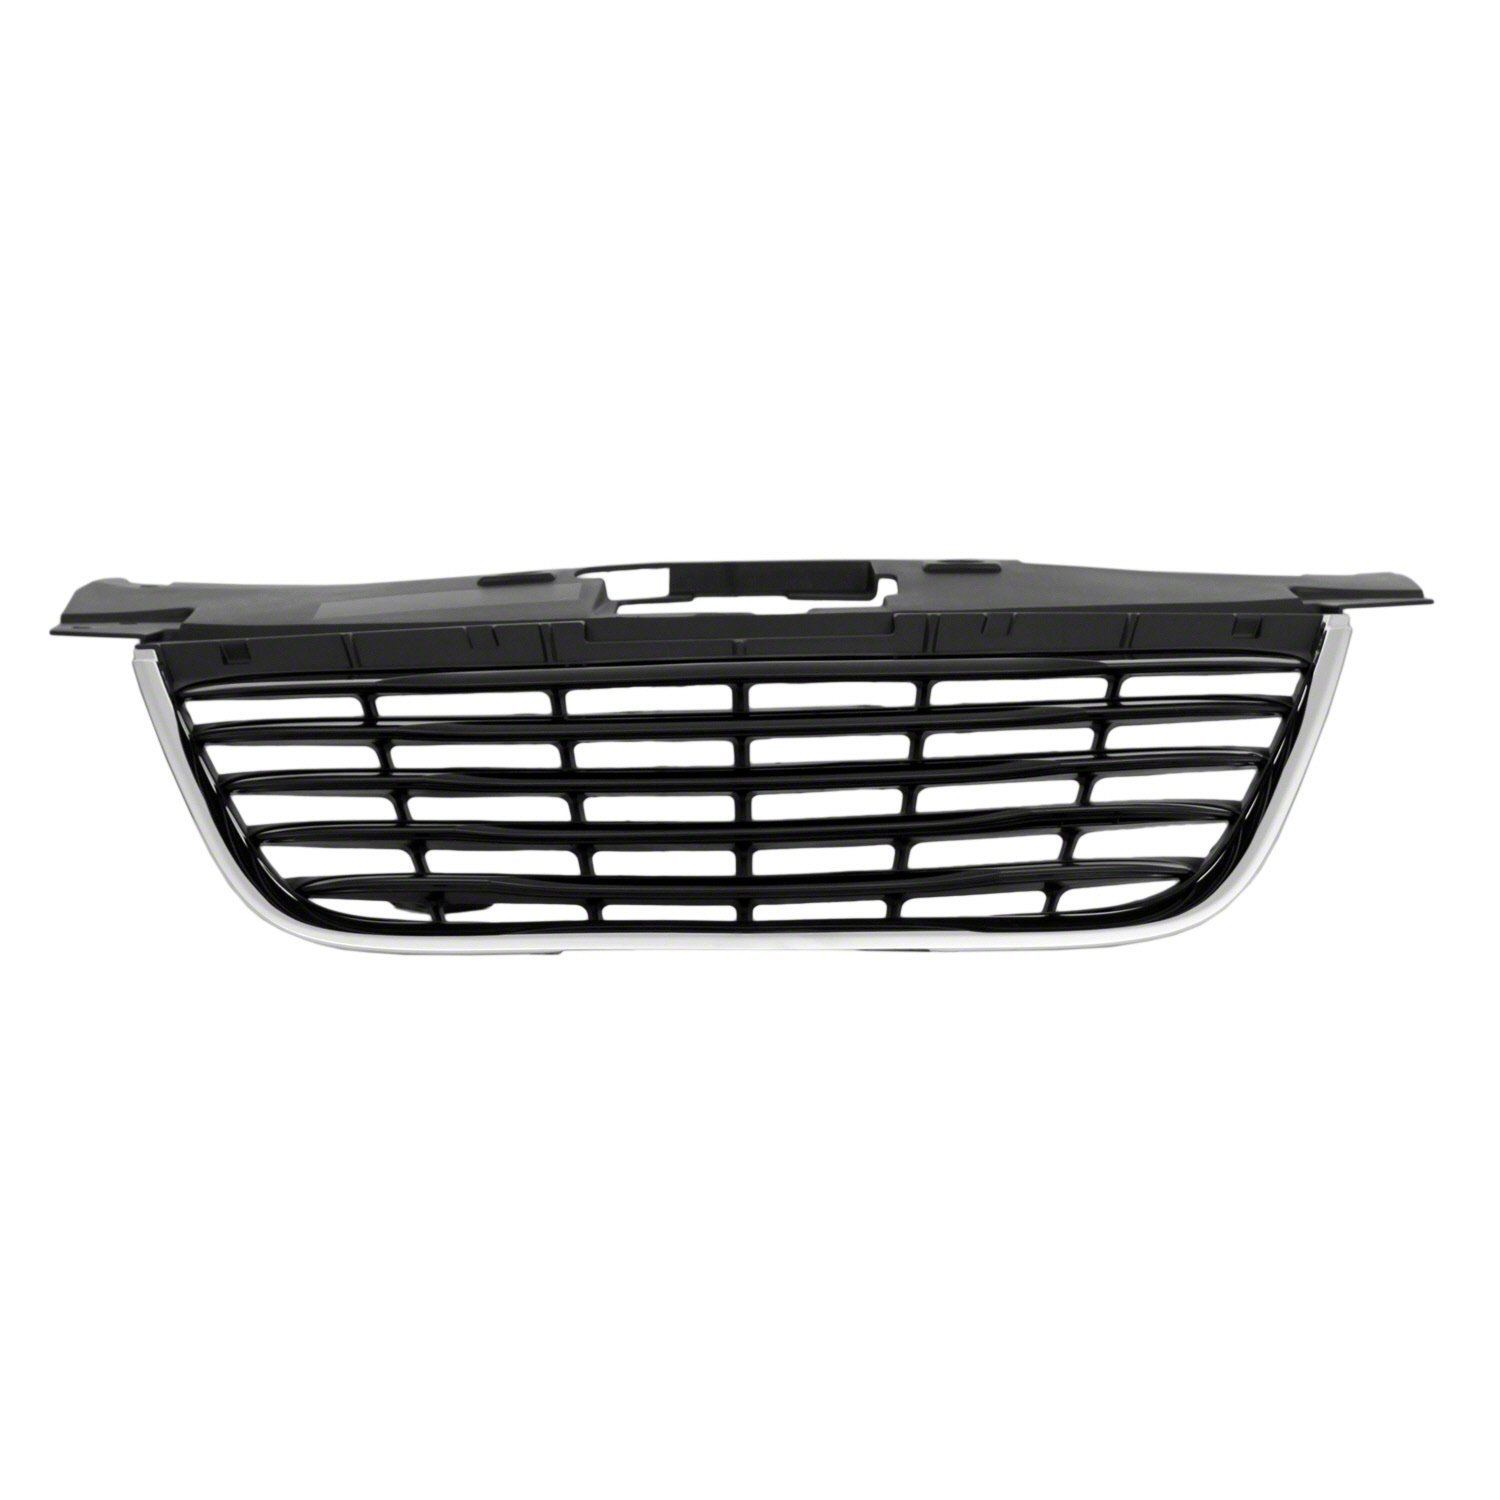 Paint To Match CAPA Grille Assembly for 2011-2014 Chrysler 200 CH1200352